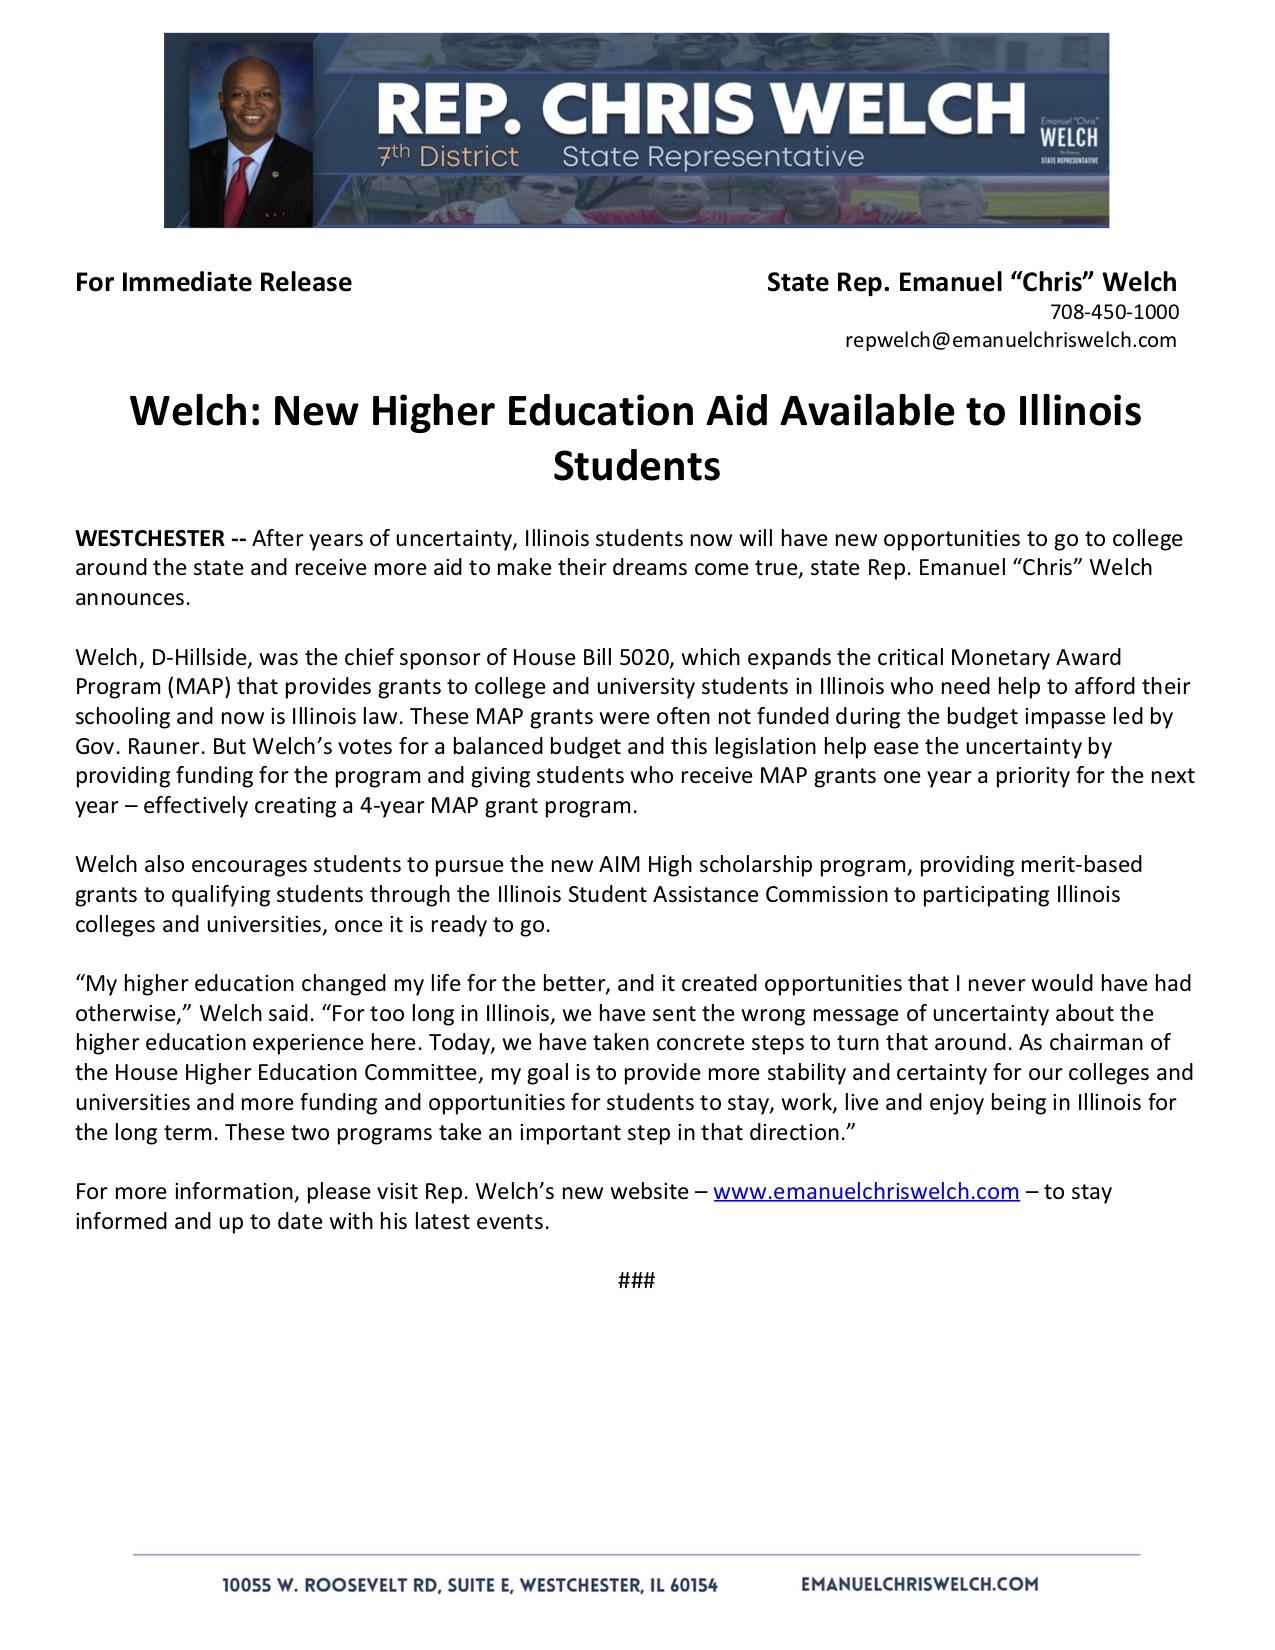 Welch: New Higher Education Aid Available to Illinois Students  (August 13, 2018)